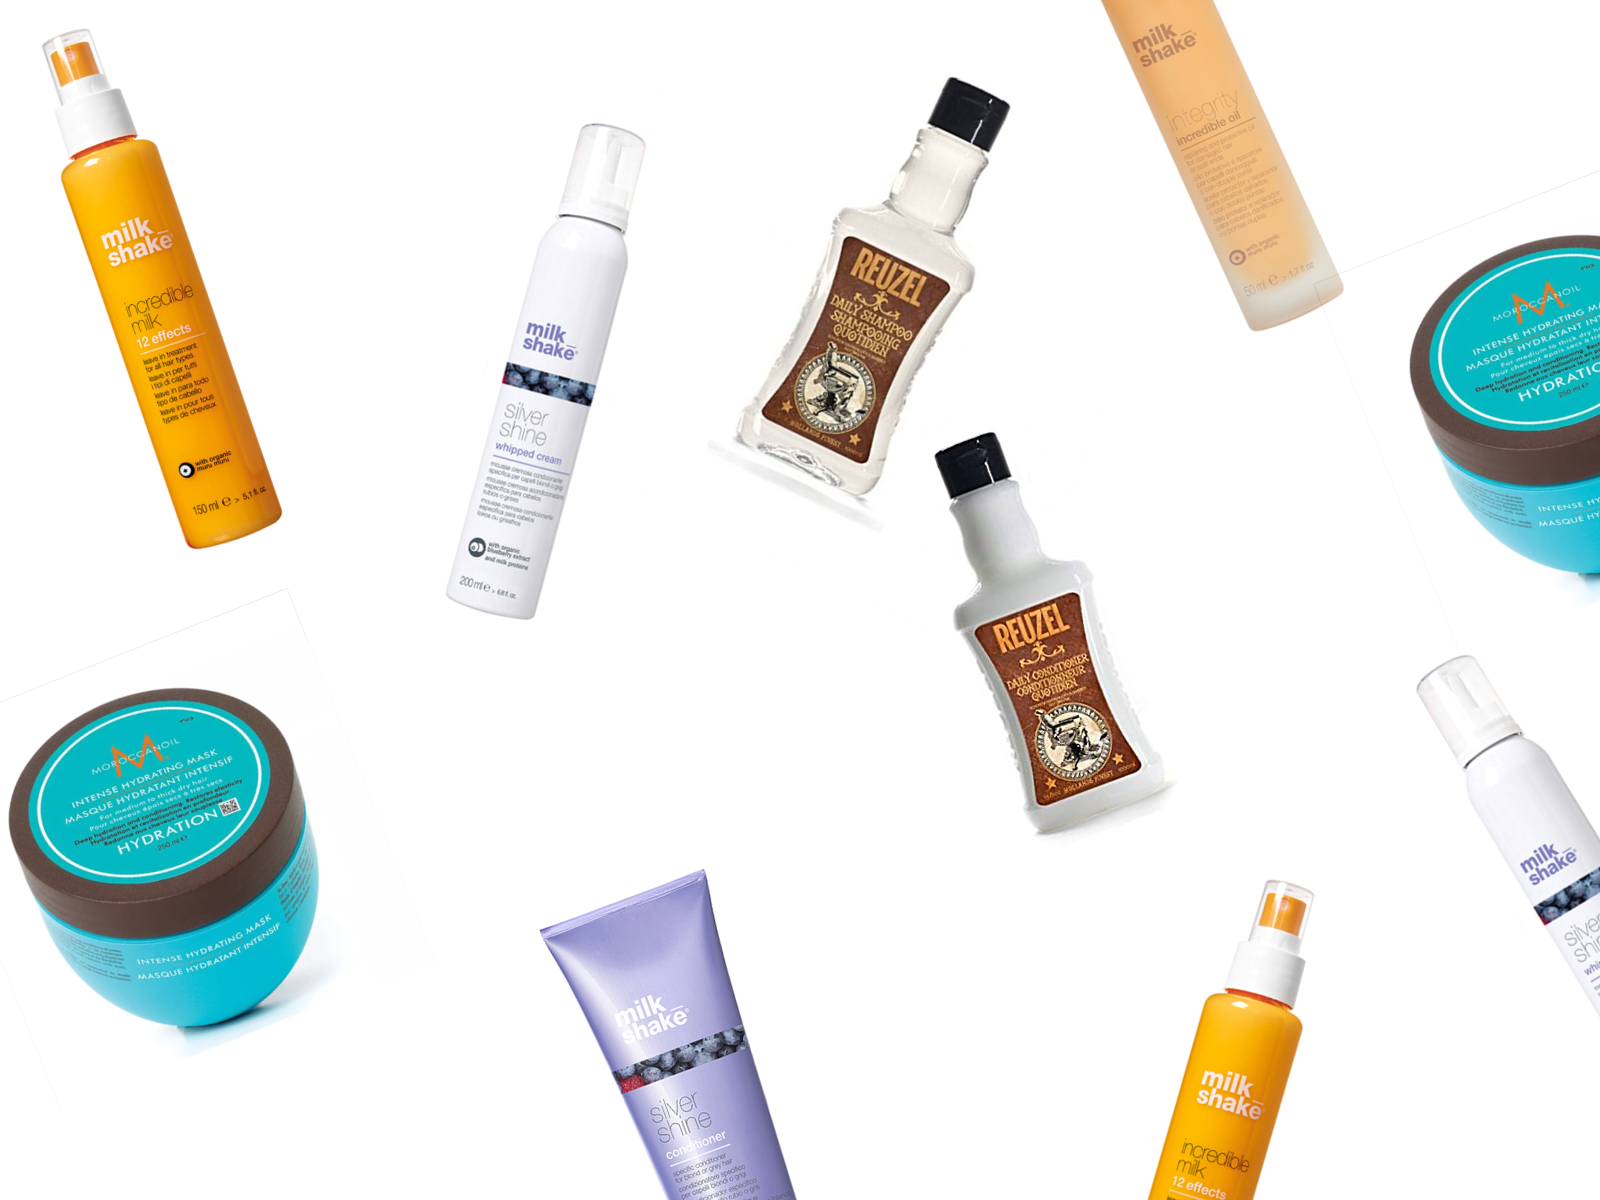 Find your Perfect Match - Your hair deserves the best, make sure the products you use are the perfect pairing for your hair type.